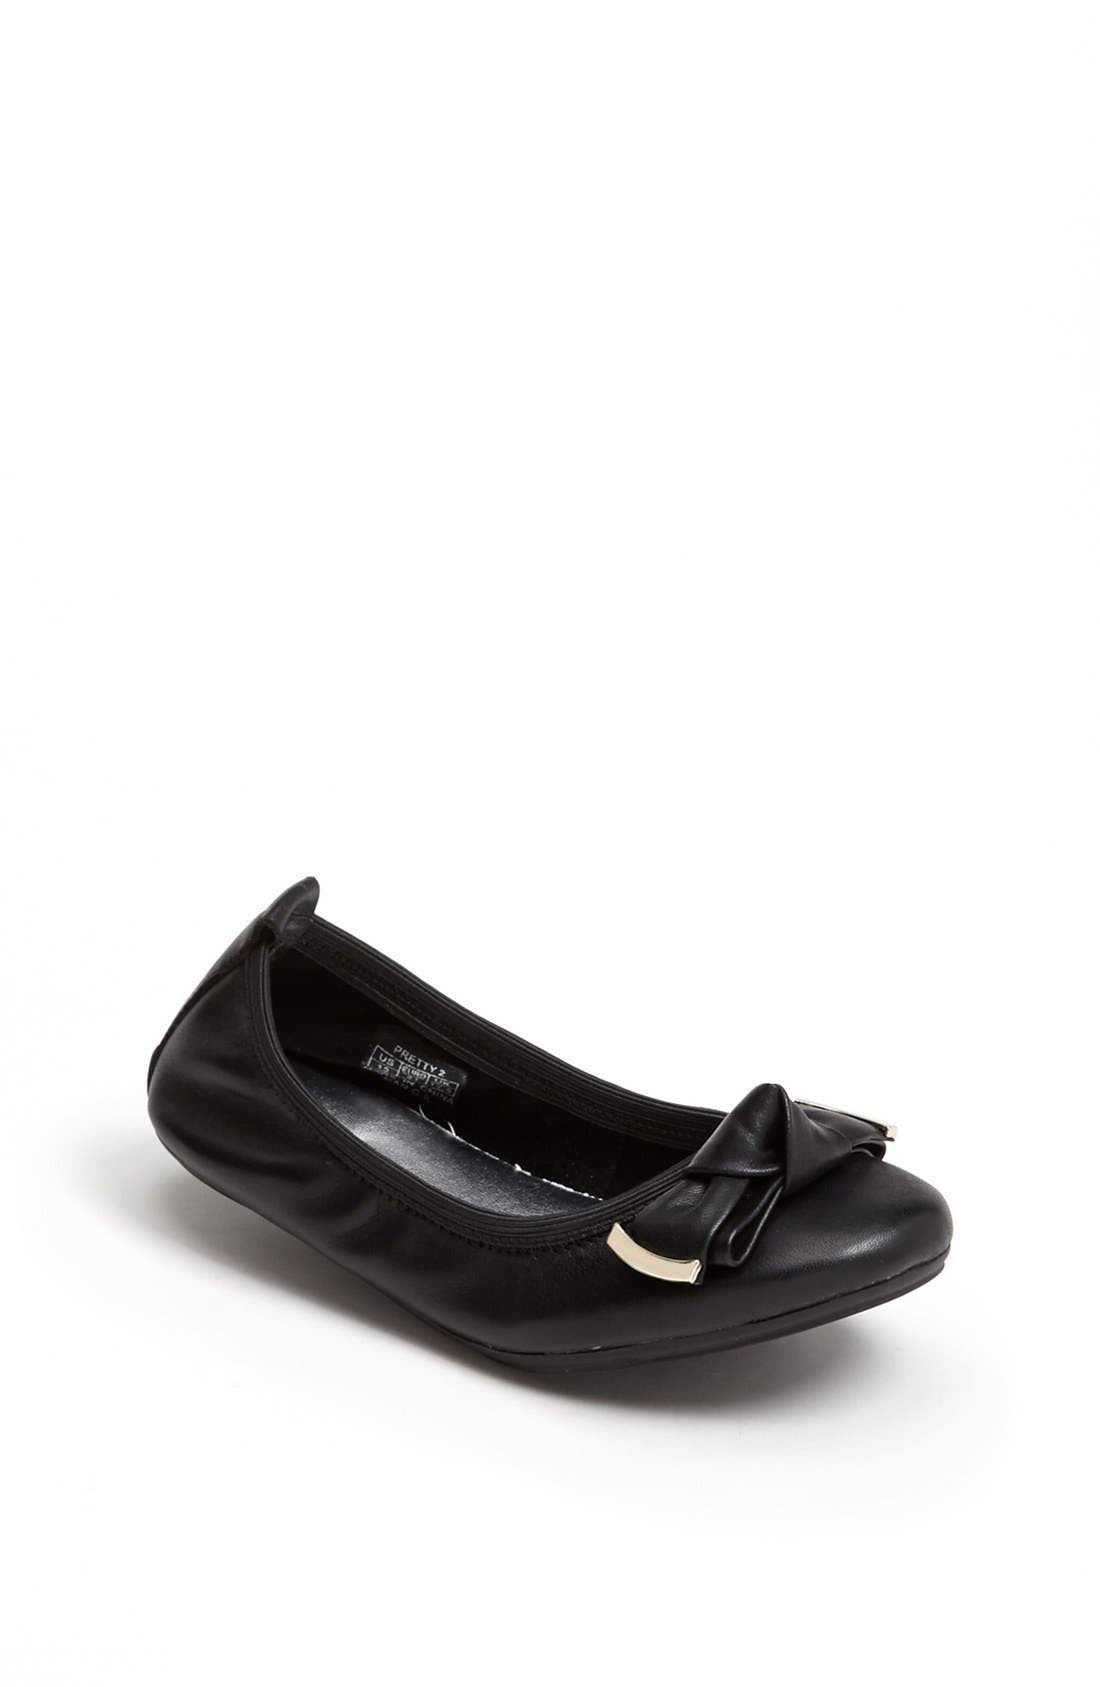 Main Image - Cole Haan 'Pretty 2' Ballerina Flat (Little Kid & Big Kid)